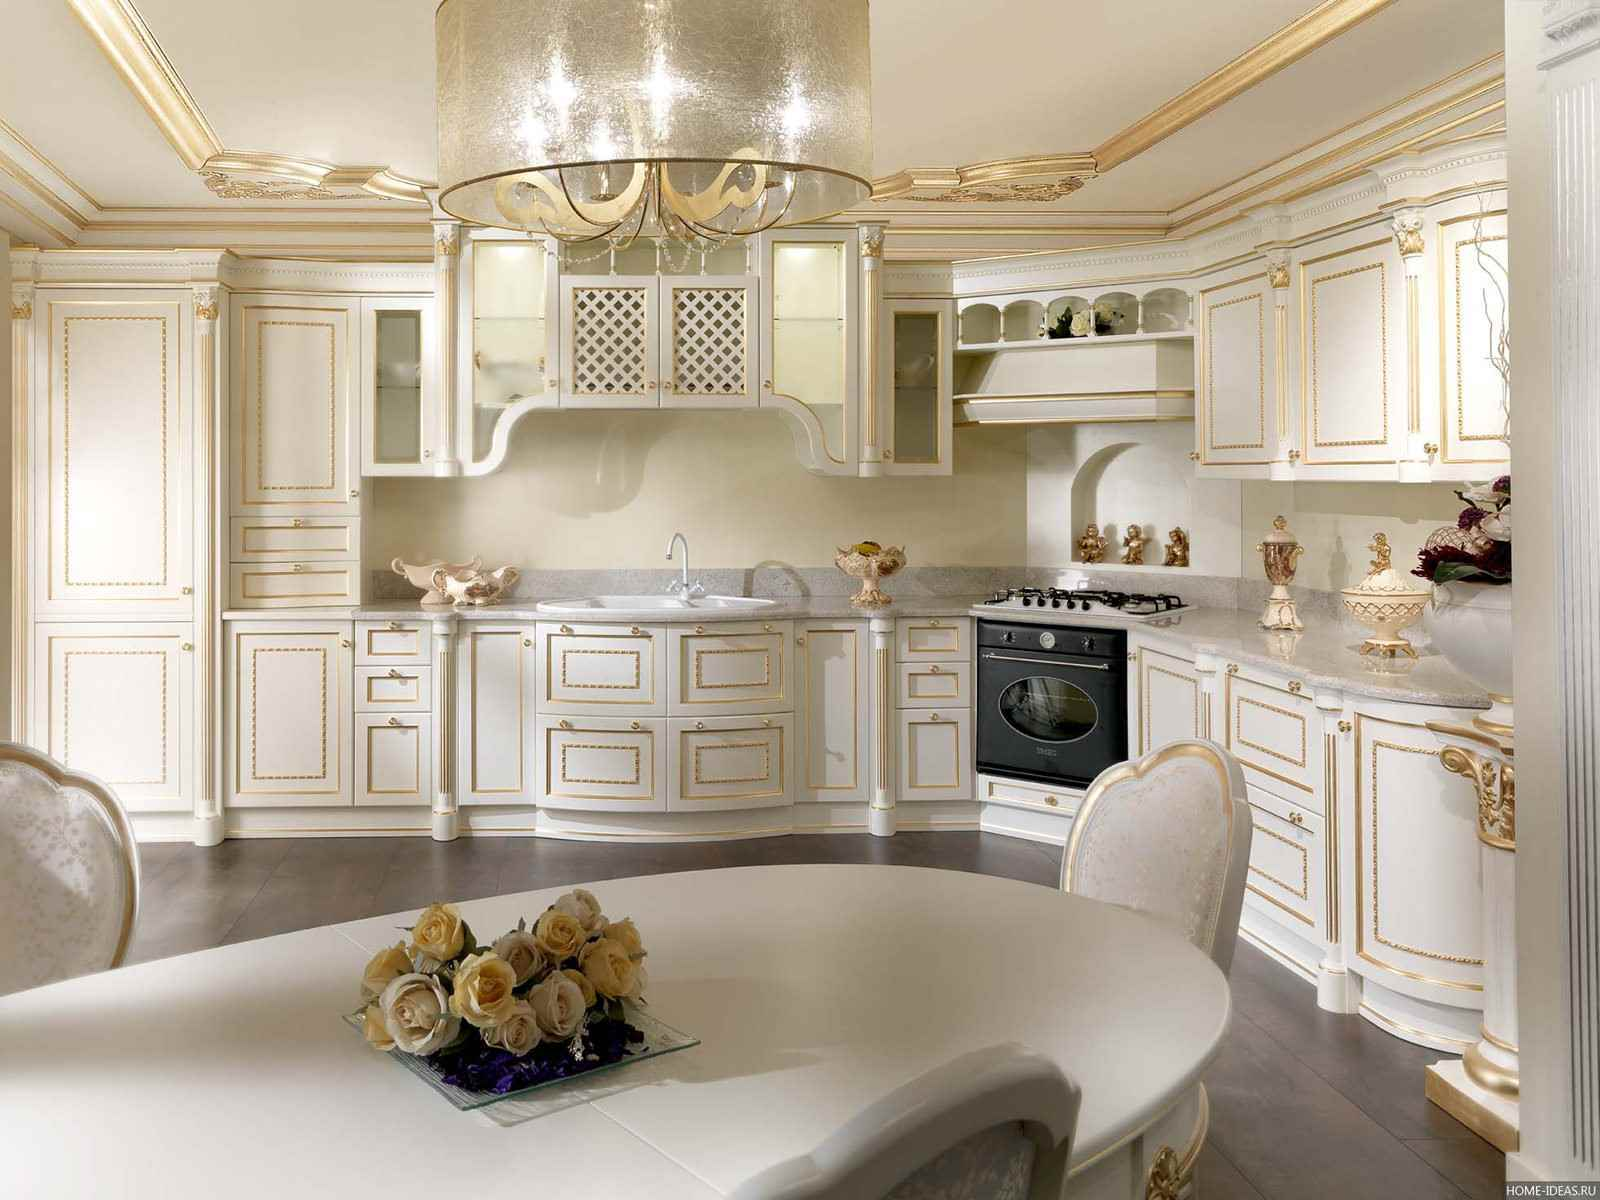 Classic style kitchen: Design and decoration